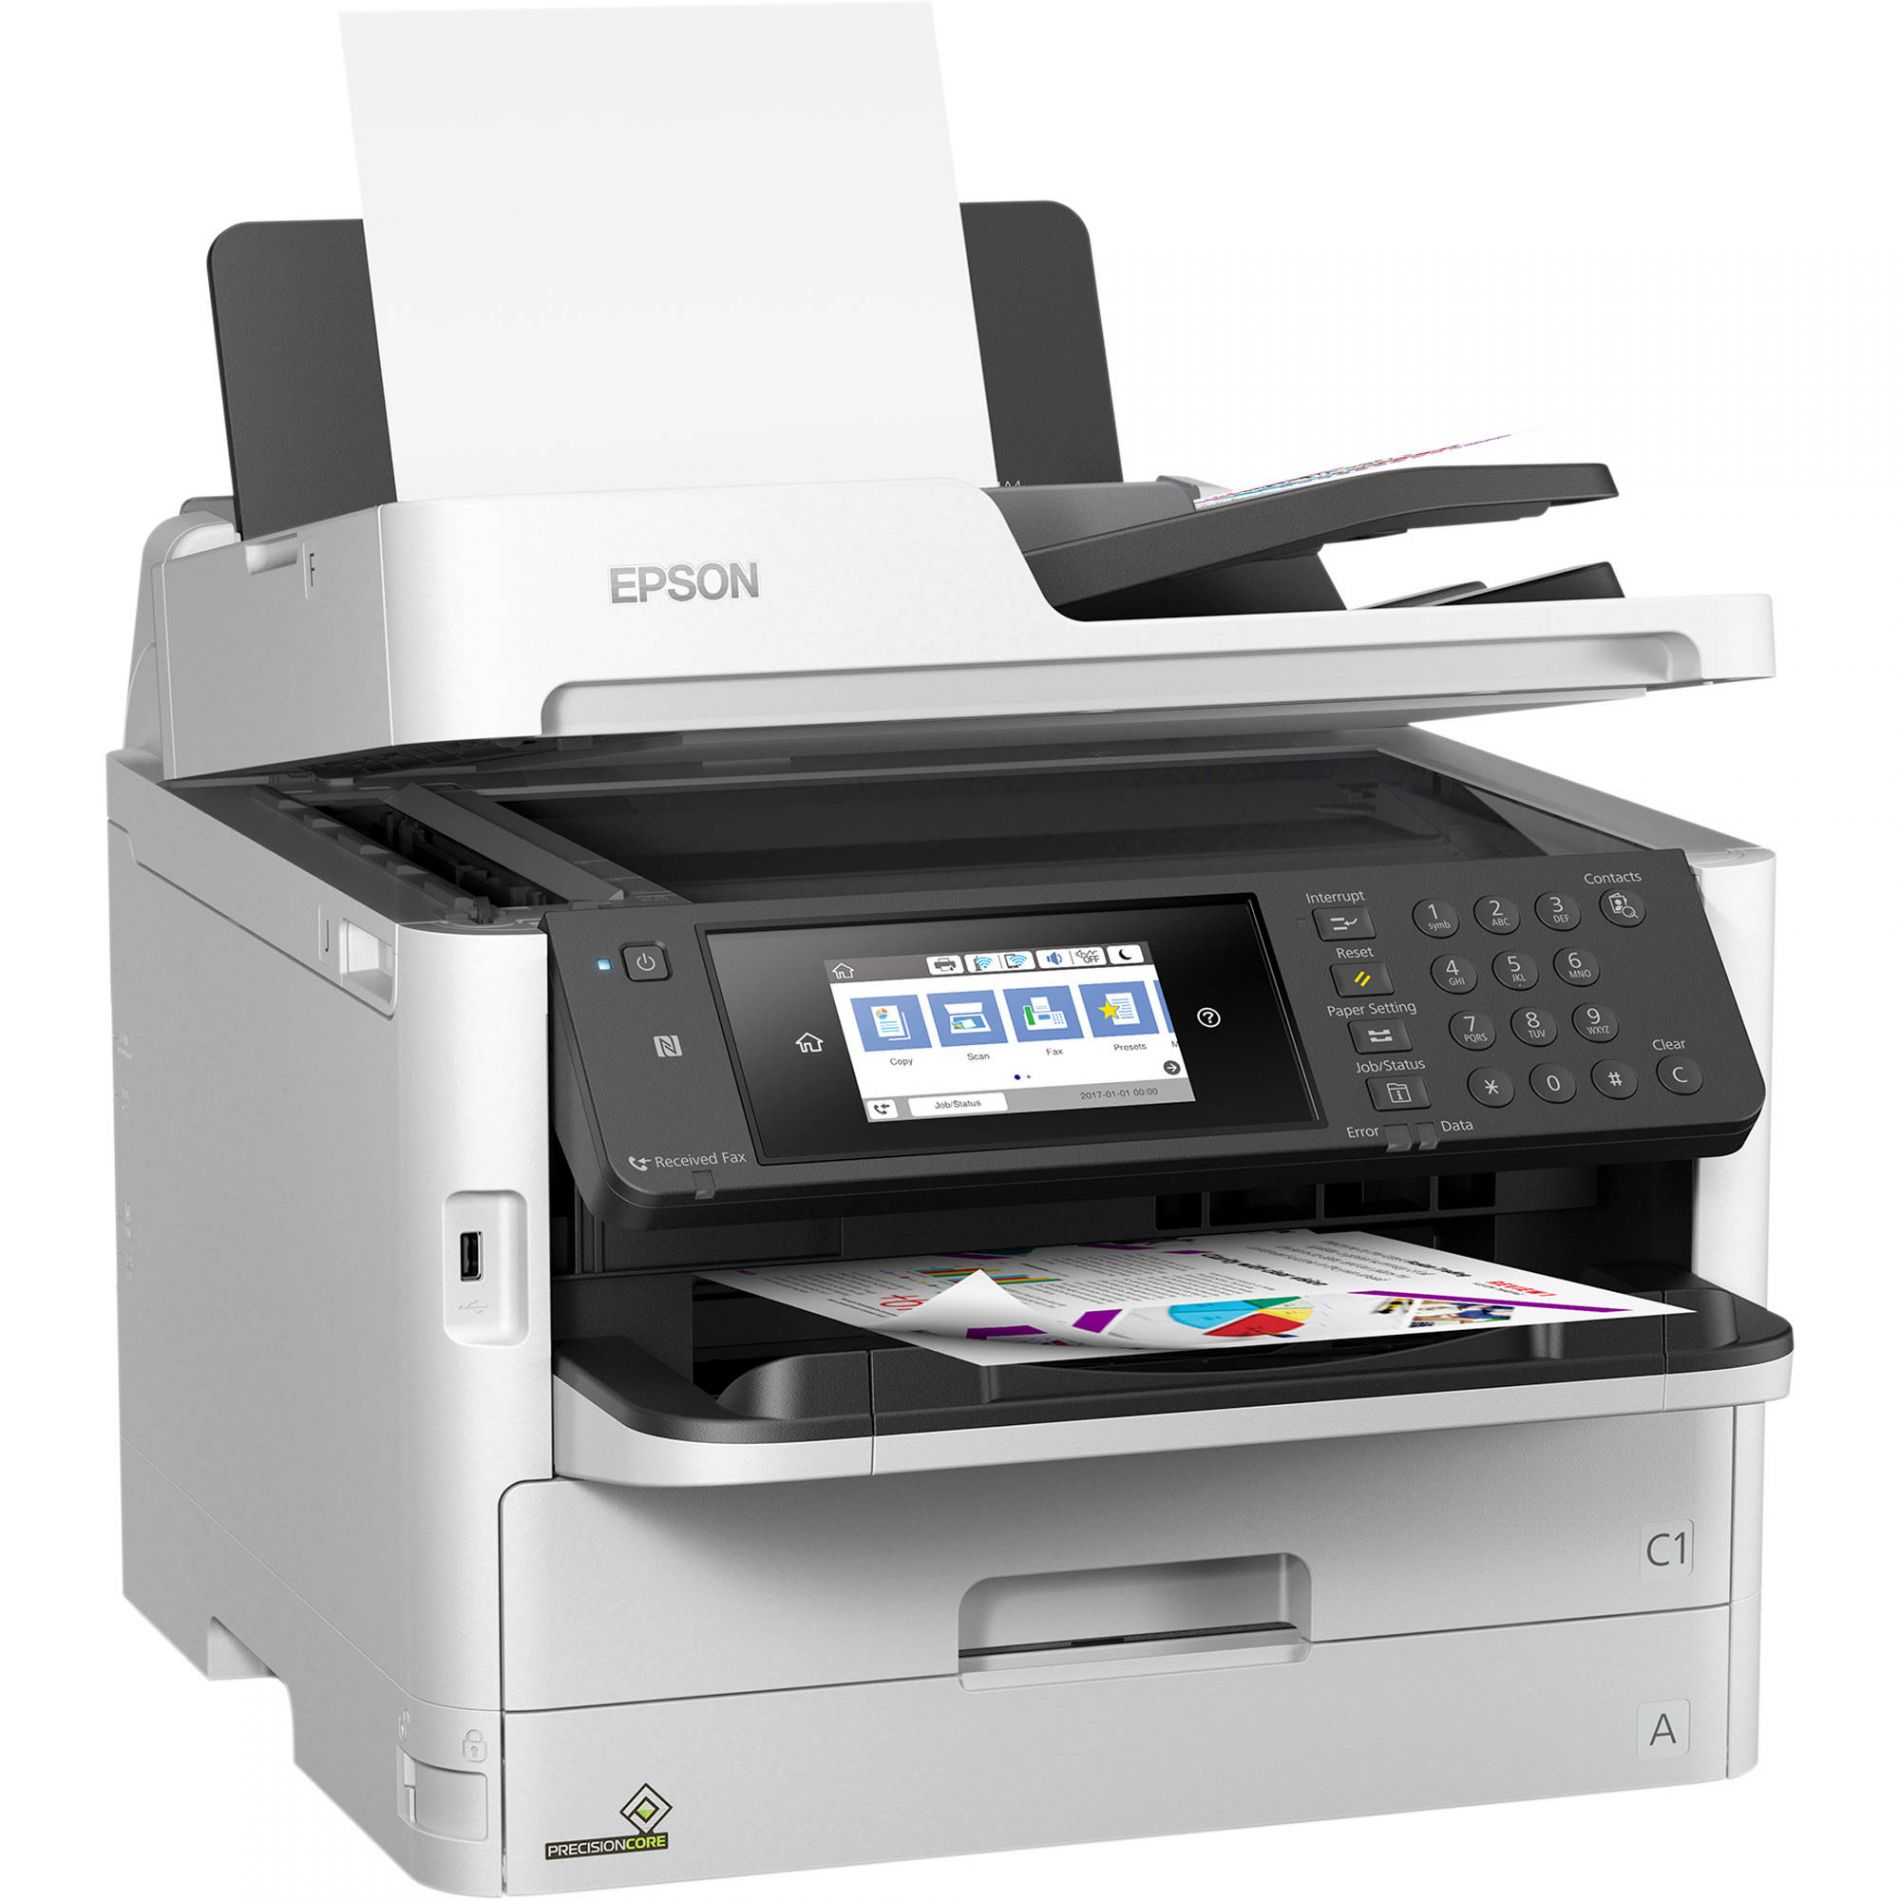 impresora-multifuncional-epson-workforce-pro-wf-c5710-imprime-escanea-copia-fax-wifi